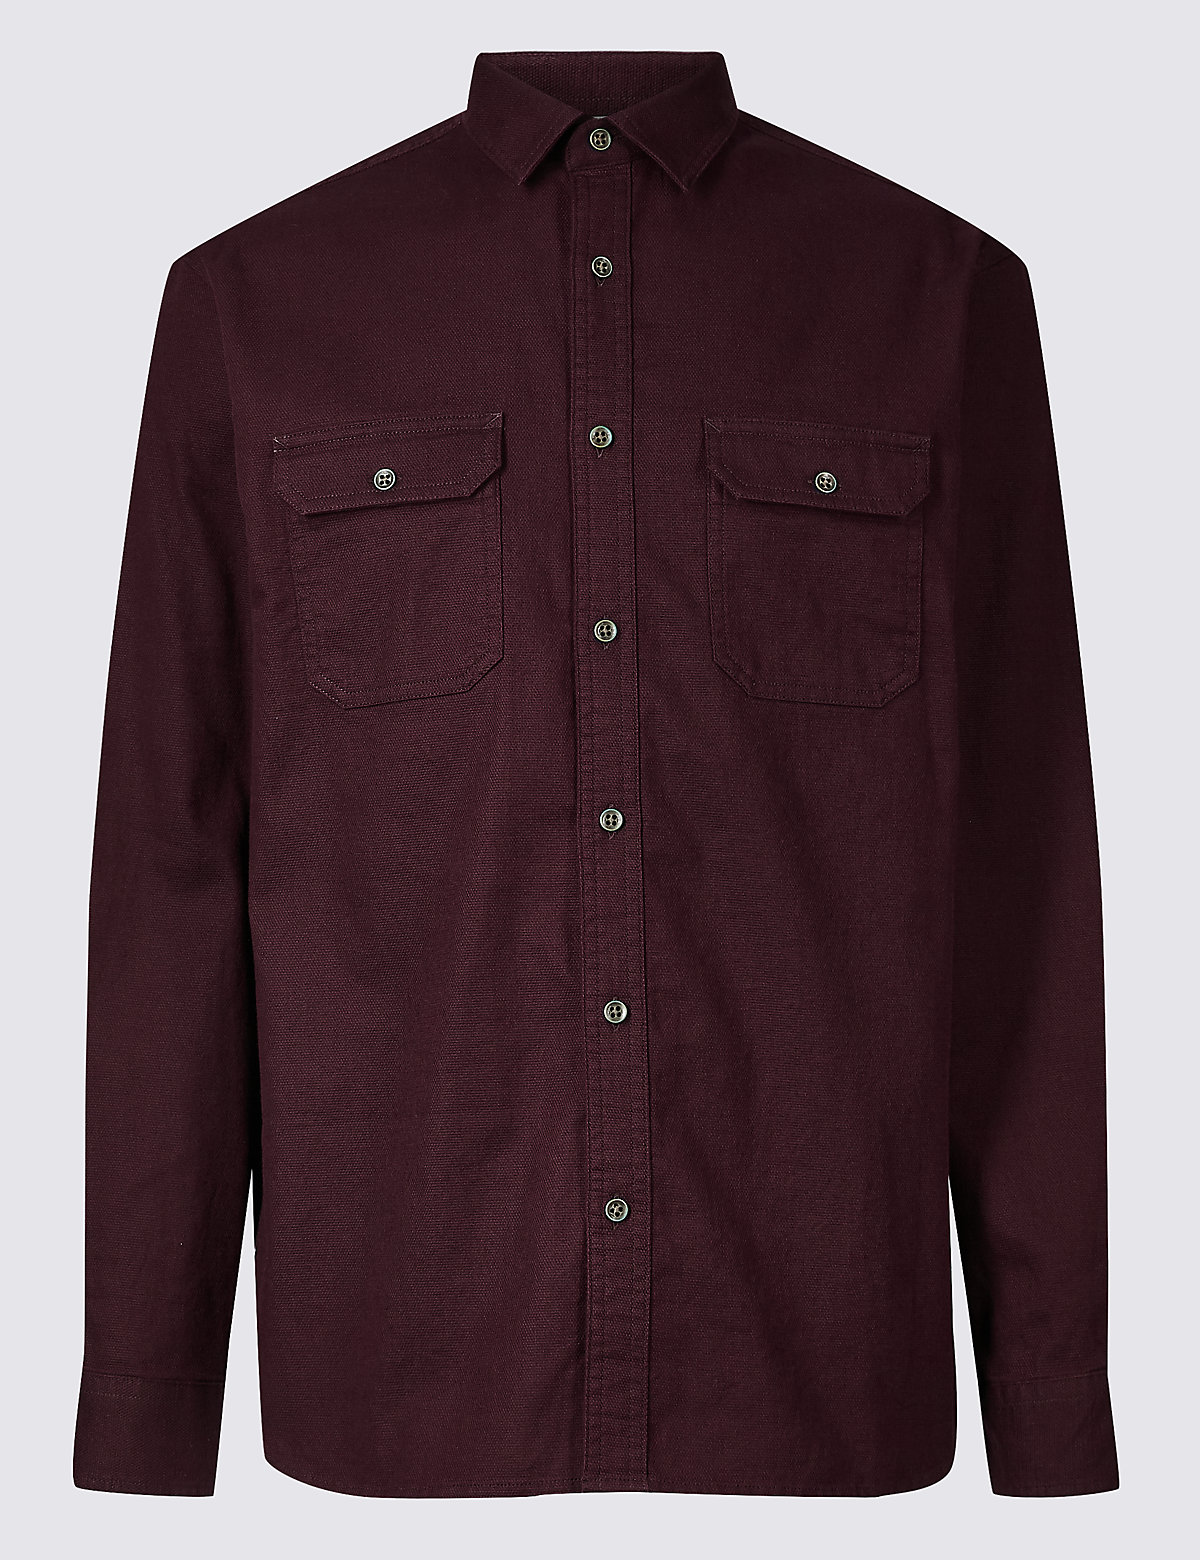 Marks & Spencer Dark Aubergine Pure Cotton Textured Shirt with Pockets